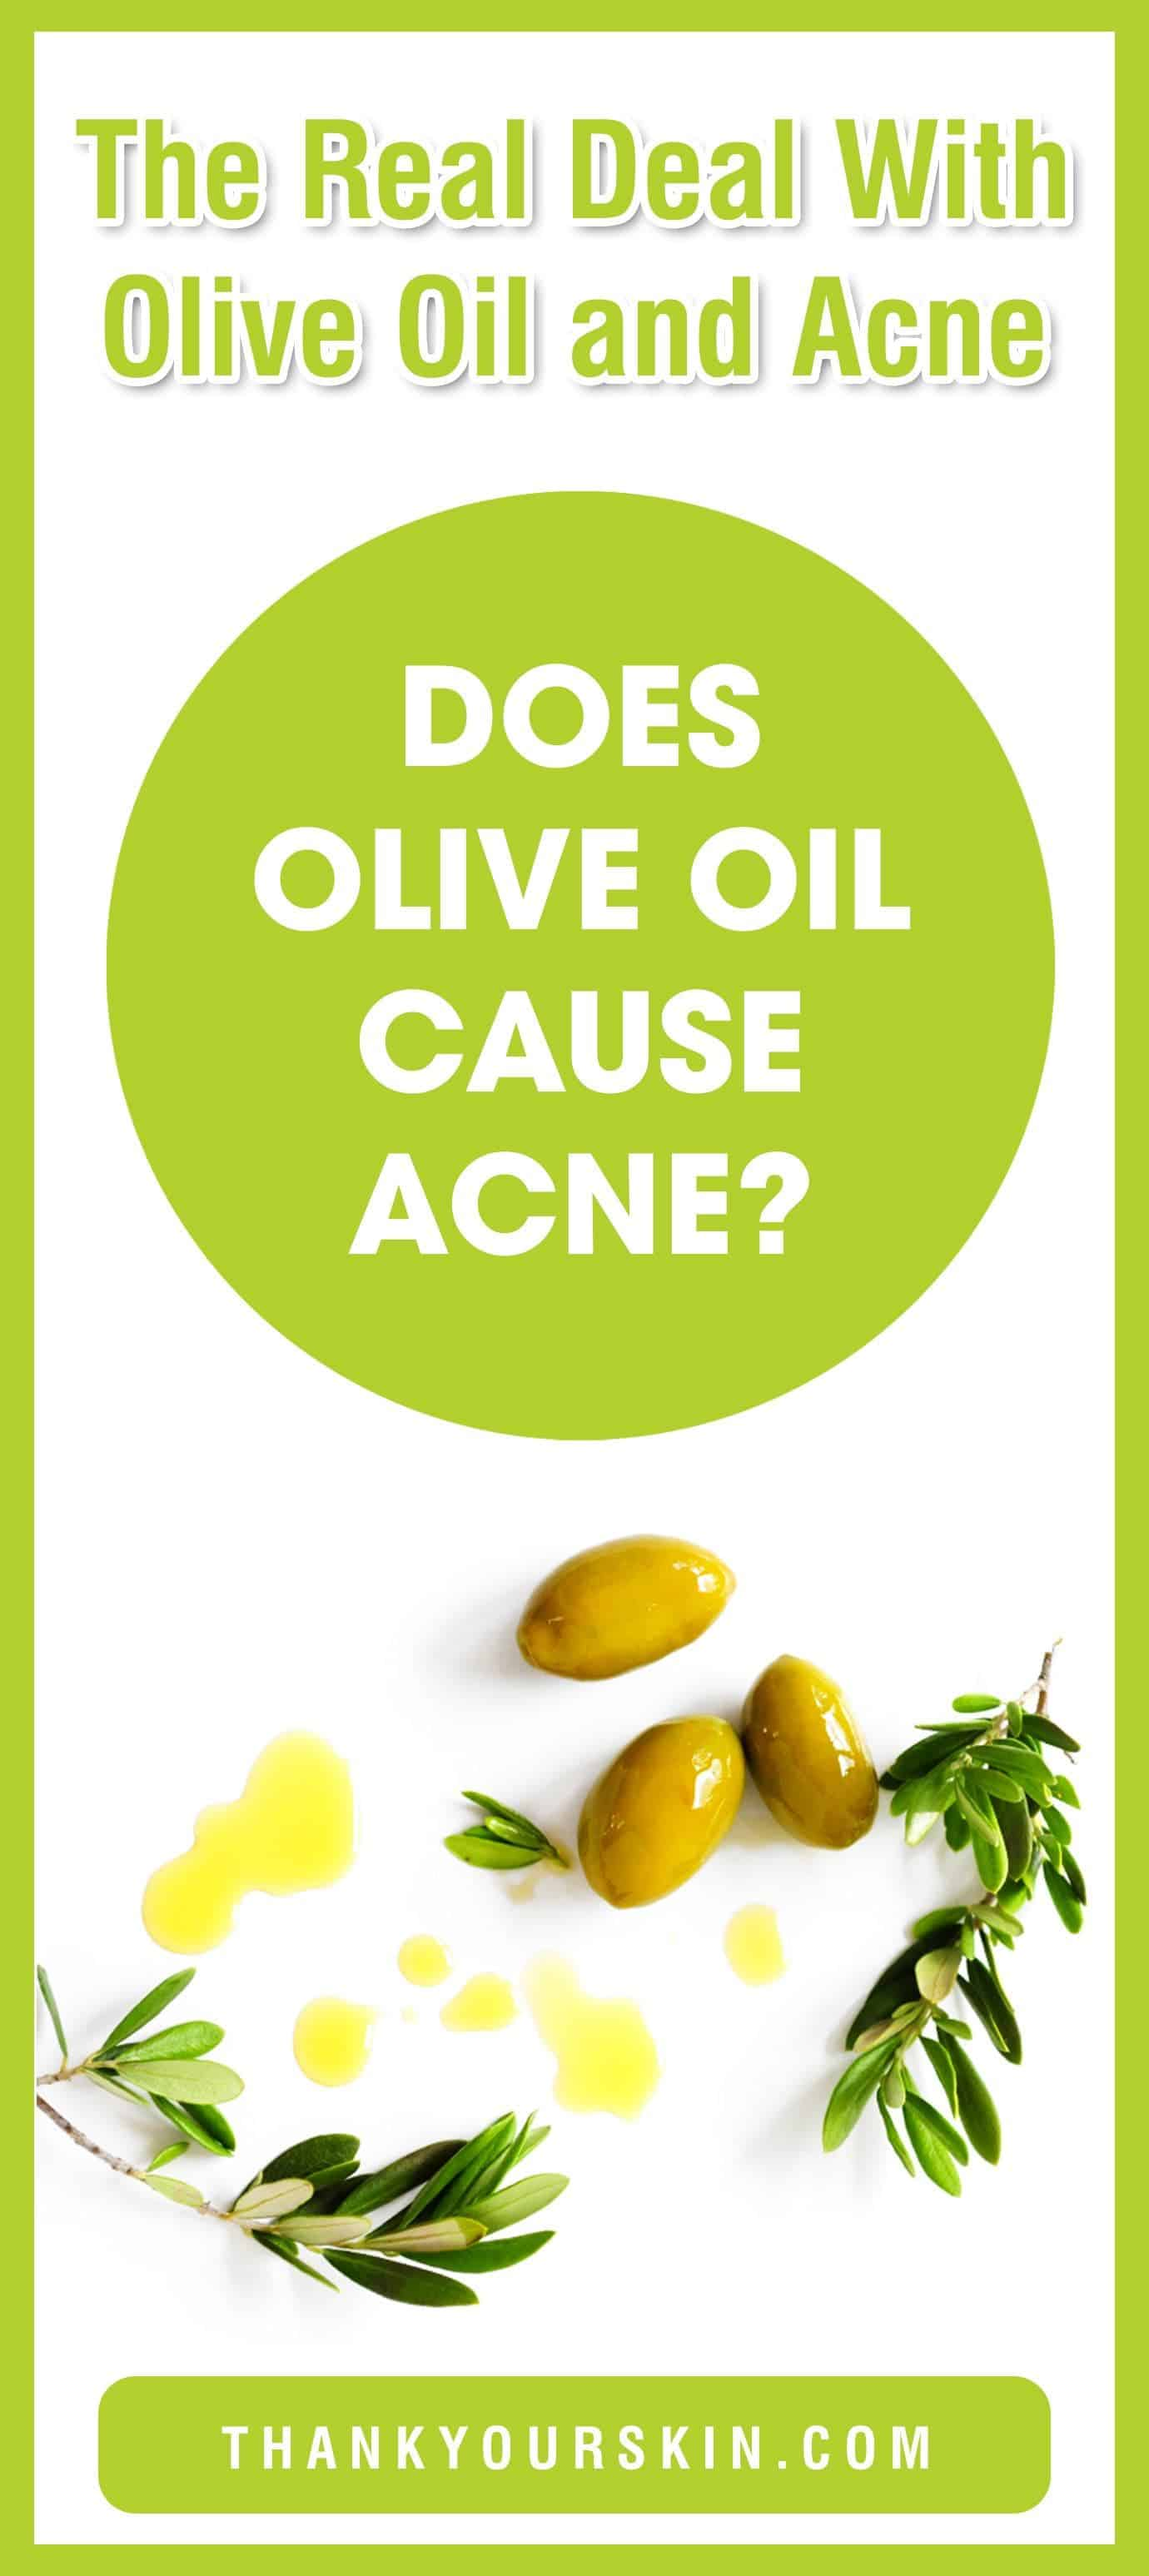 Does olive oil cause acne